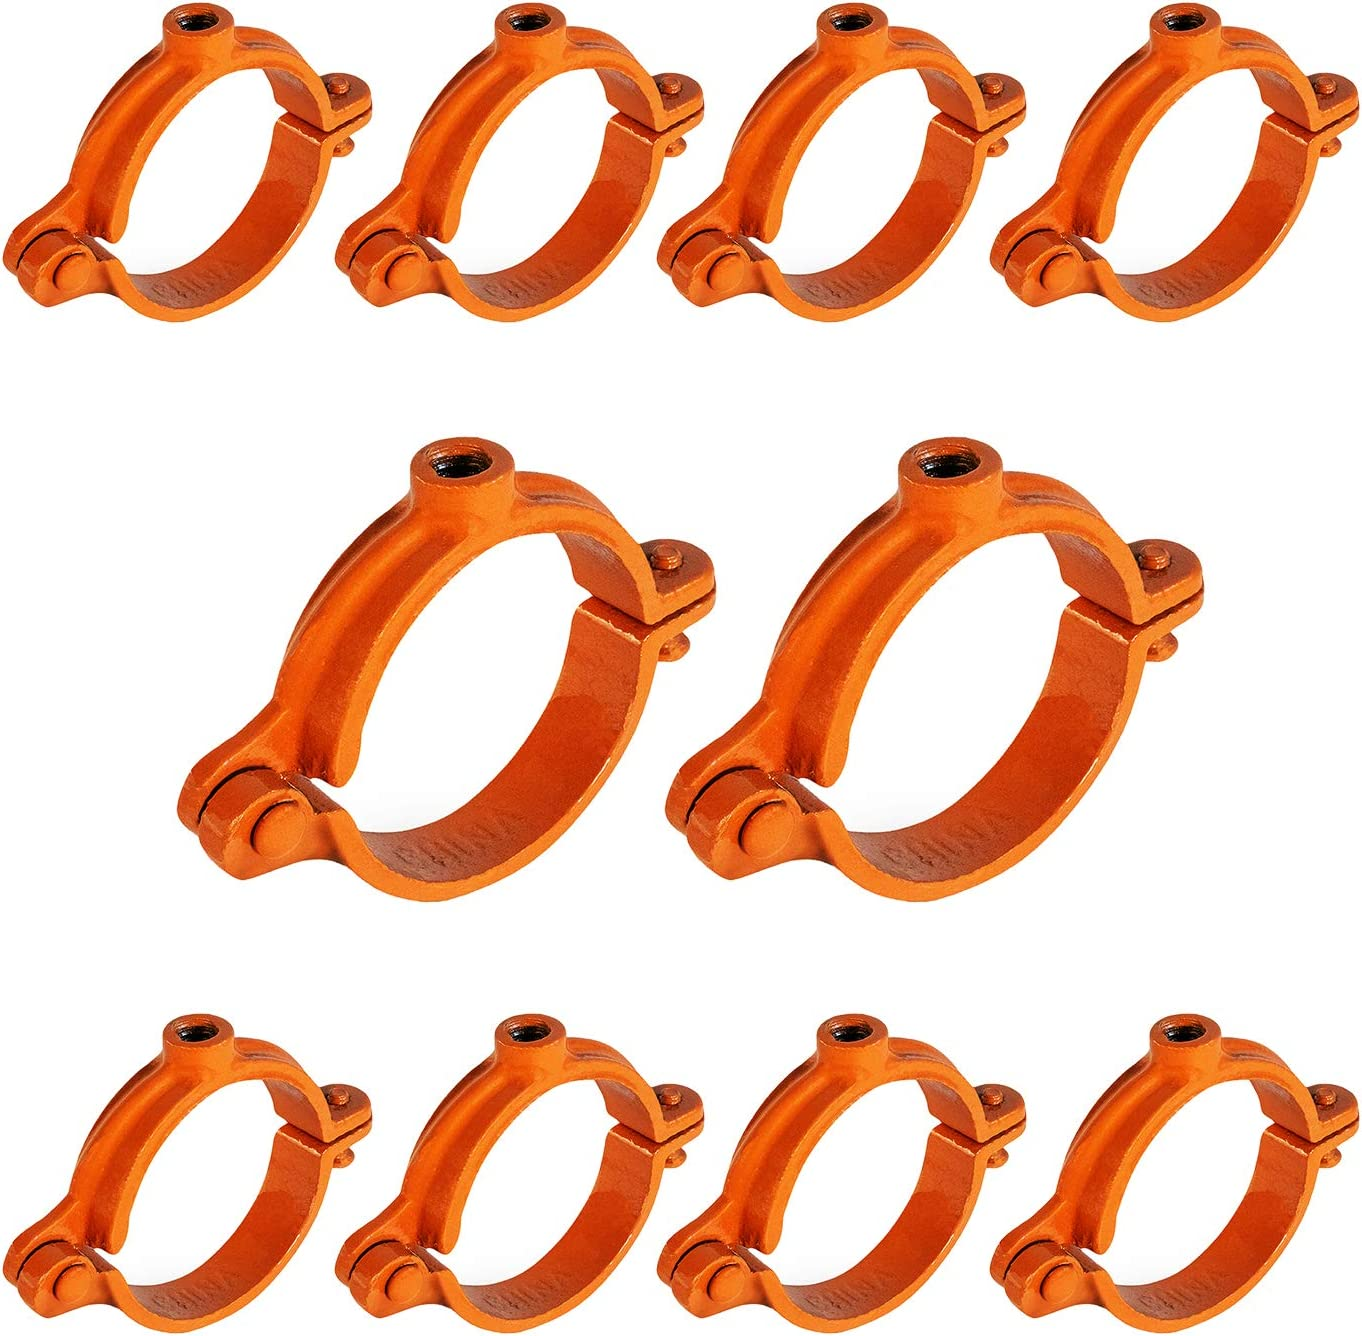 HIGHCRAFT HINGC-01-10 Industrial Decor Hinged Split Ring Pipe Hanger 1 in. Copper Epoxy Coated Iron, with 3/8 in. Rod Fitting, Vintage Mounting Bracket for Tubing, Shower Curtain, Tiki Torch (10 Pack)